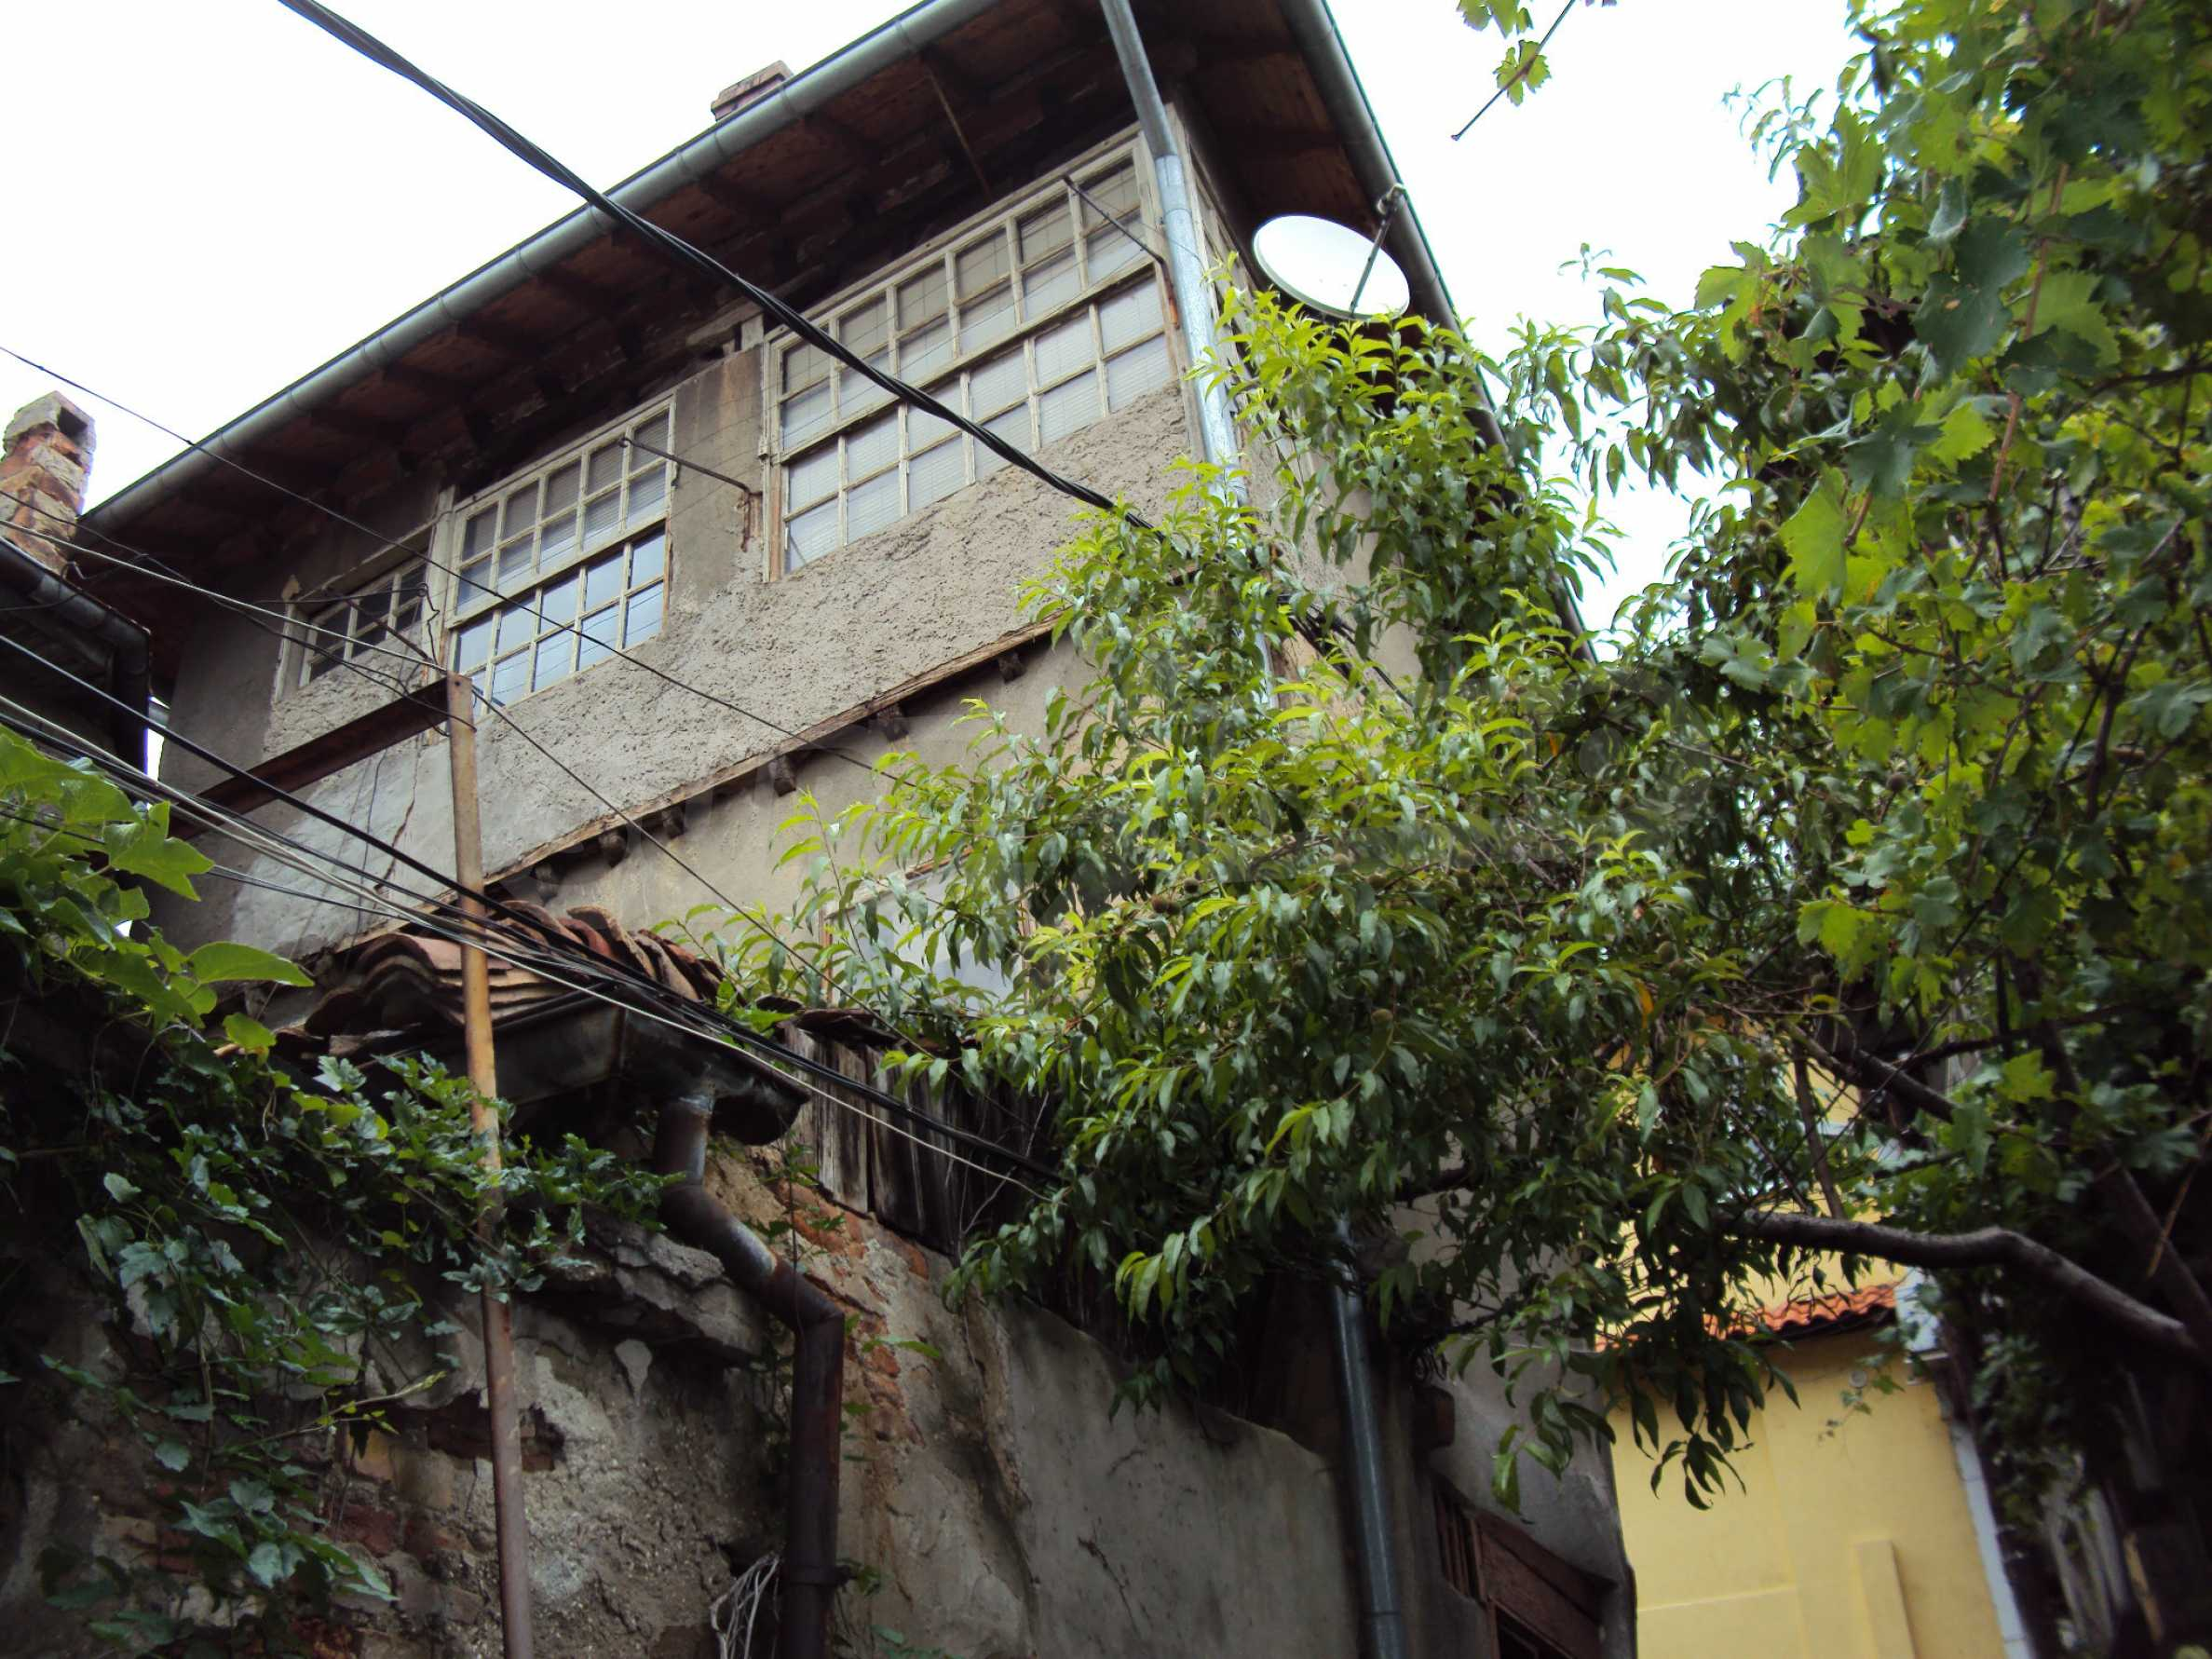 Traditional, spacious house located in the old part of Veliko Tarnovo 1